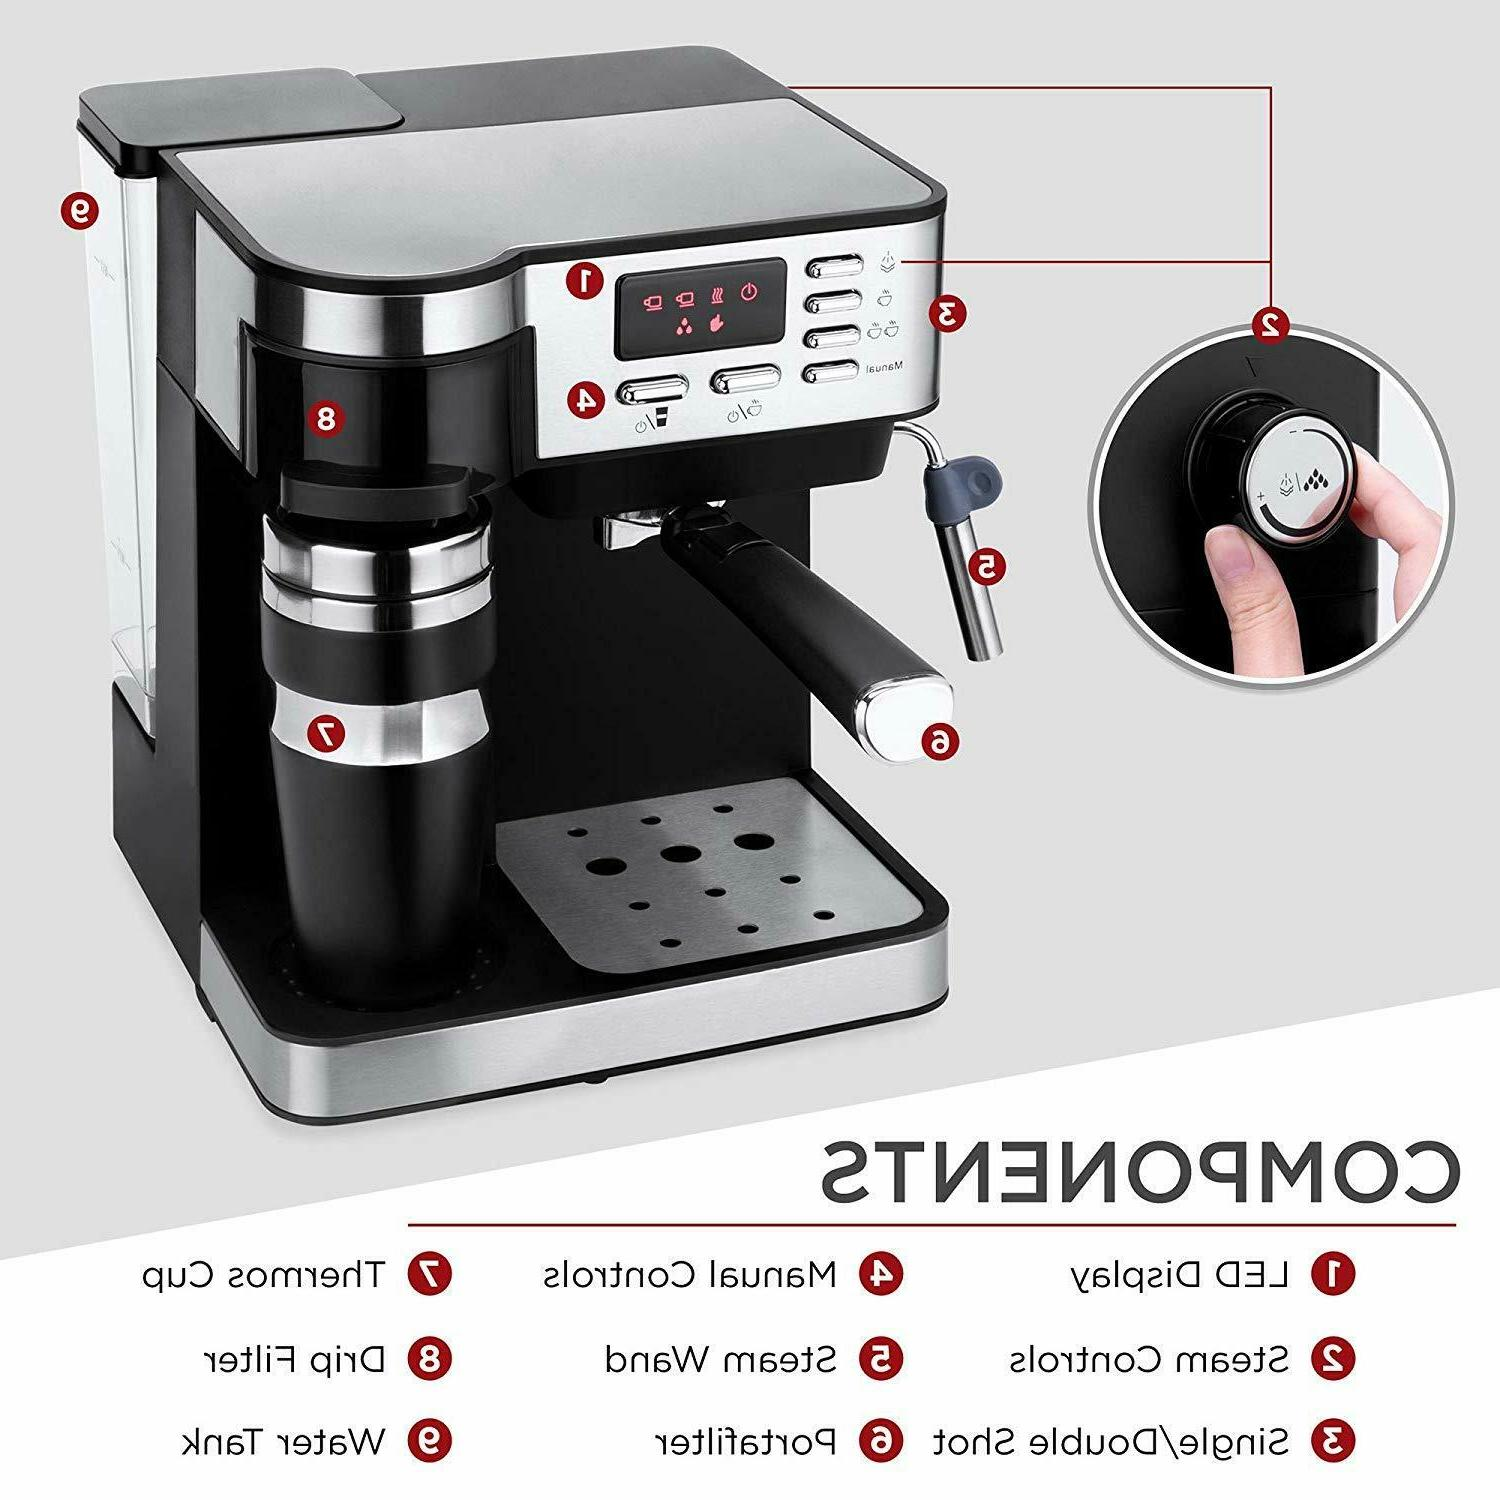 3-in-1 15-Bar Coffee, and Cappuccino Maker